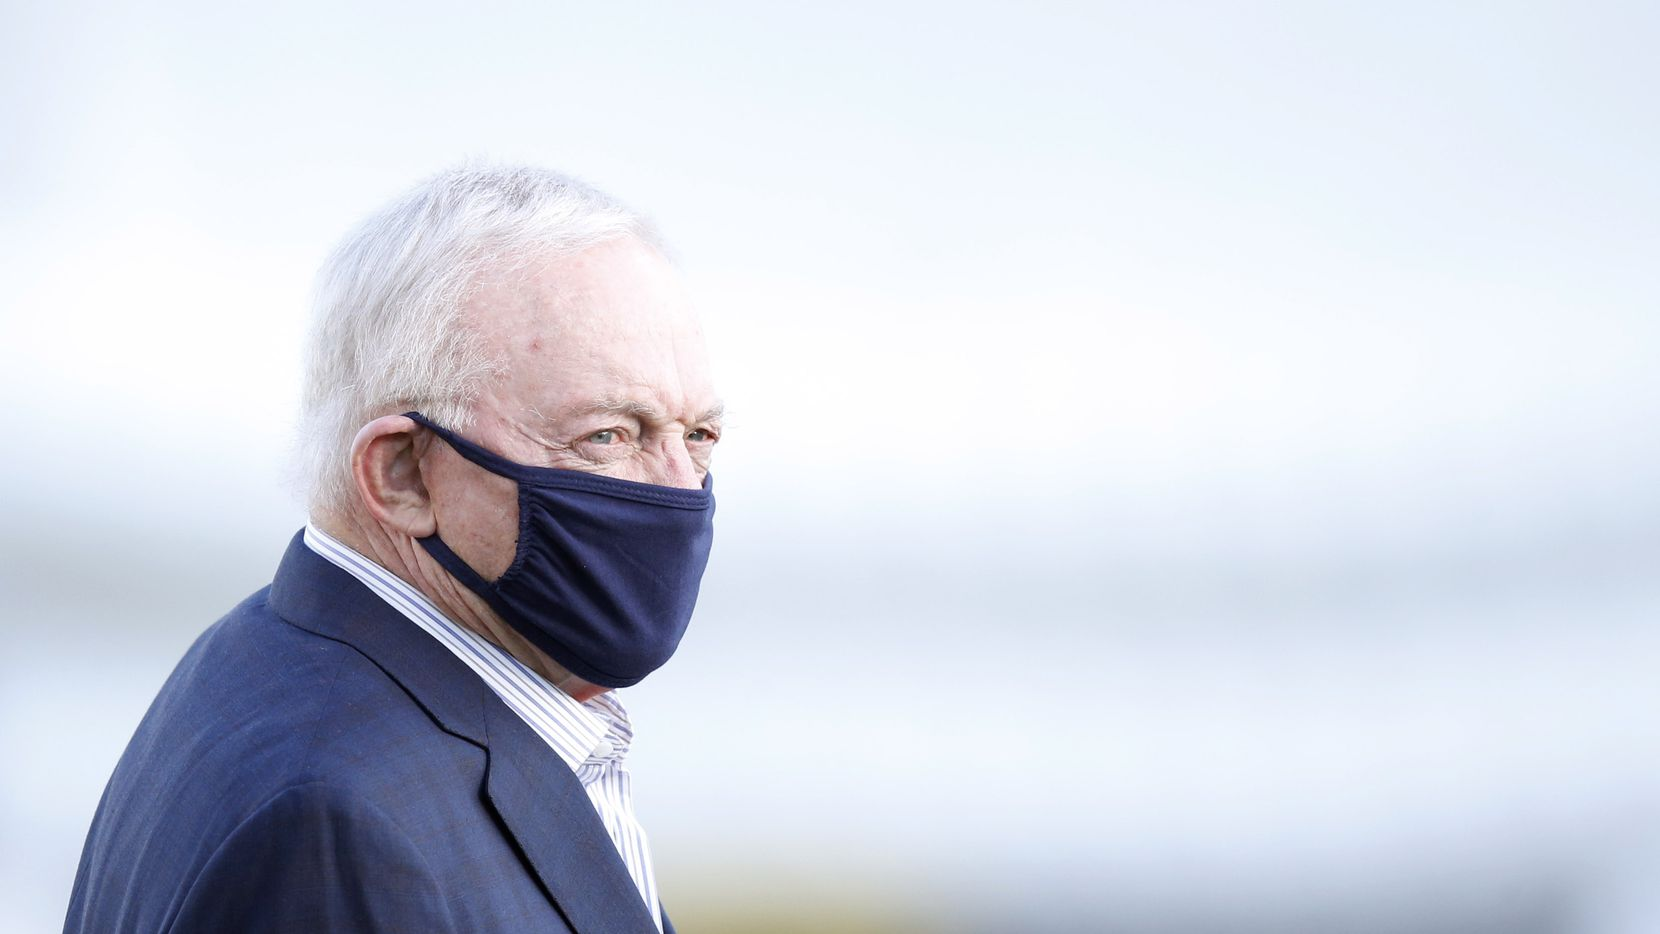 Dallas Cowboys owner and general manager Jerry Jones makes his way onto the practice field during training camp at the Dallas Cowboys headquarters at The Star in Frisco, Texas on Friday, August 21, 2020.